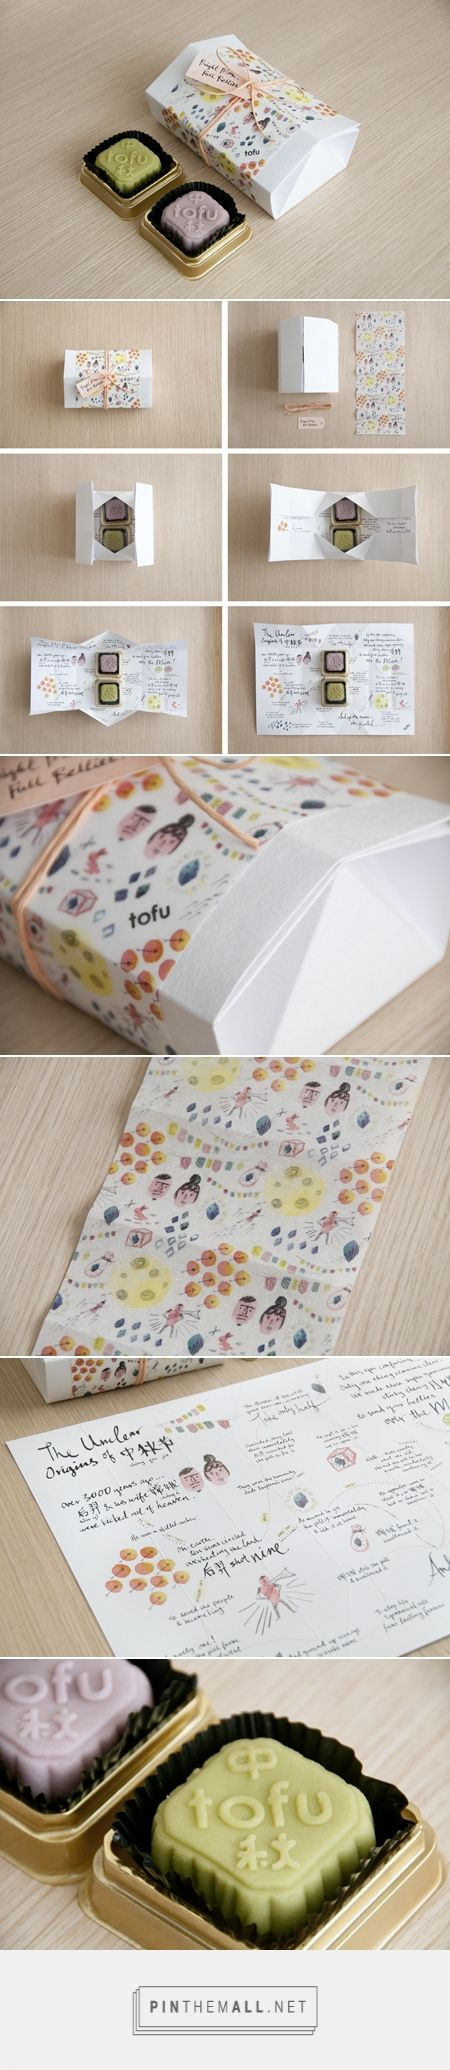 Tofu » The Unclear Origins of Mooncake Festival curated by Packaging Diva PD. This is really clever packaging with the mooncake story inside.